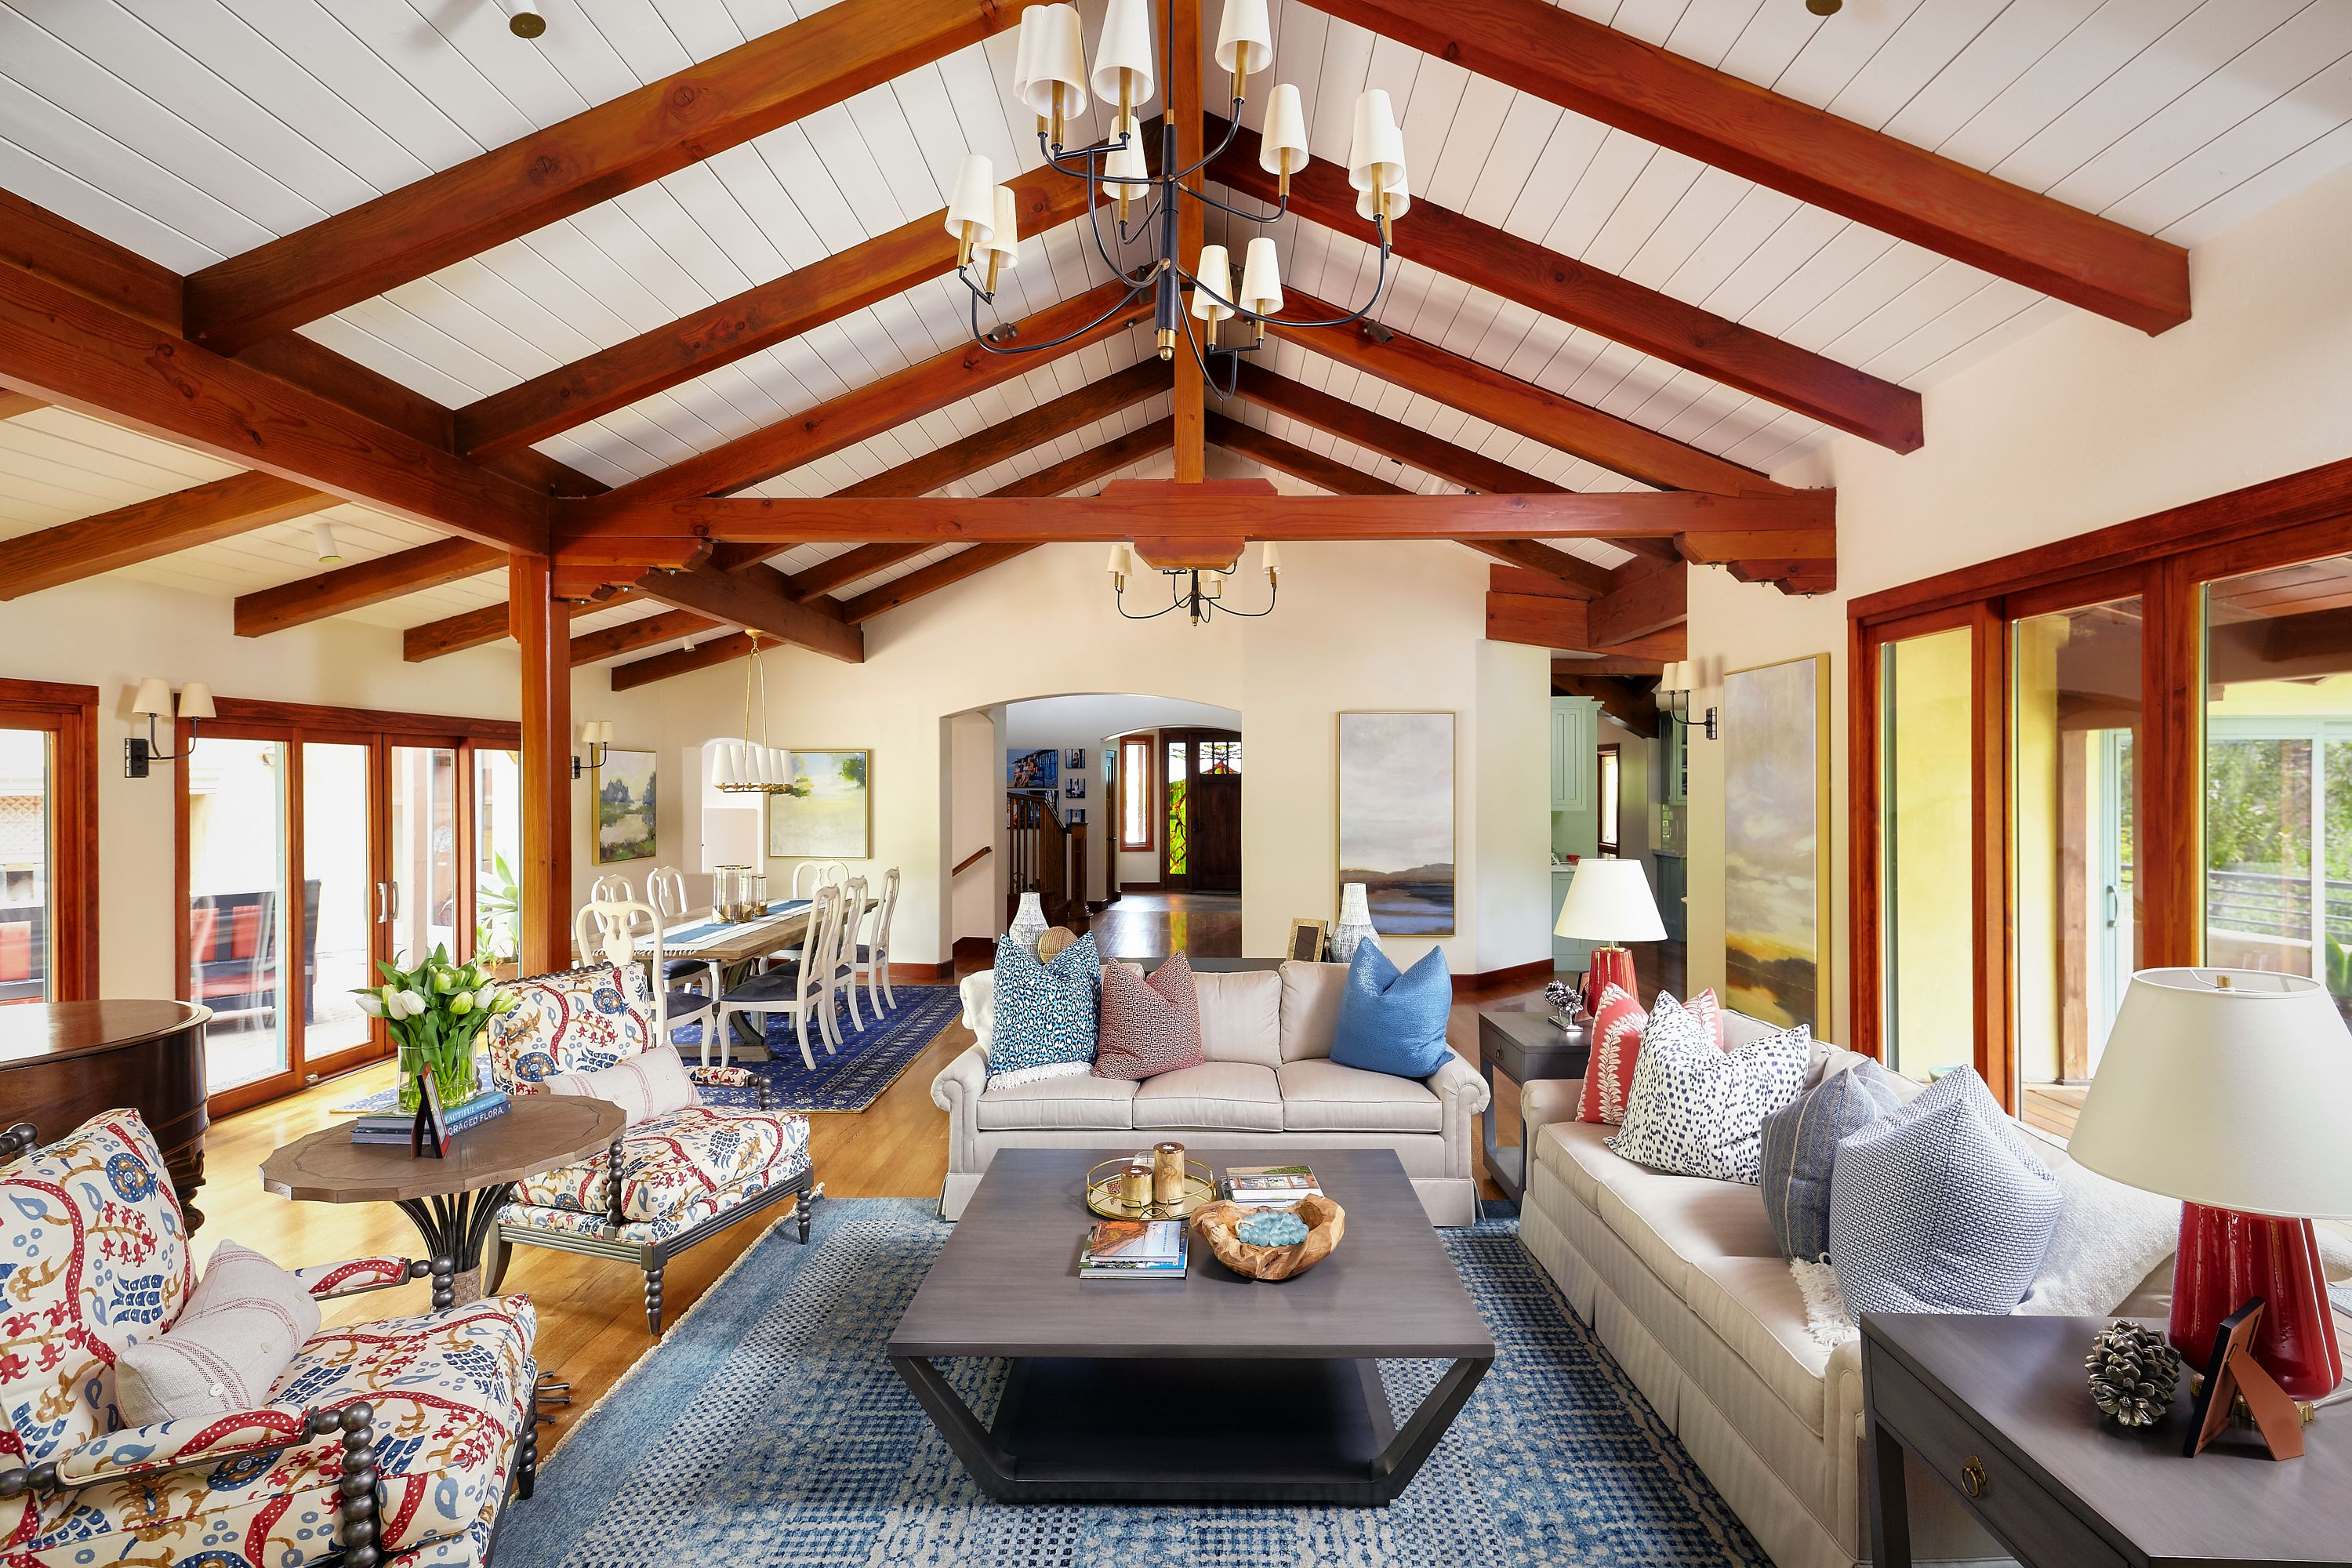 This Craftsman Great Room Is Welcoming With Its Warm Wood